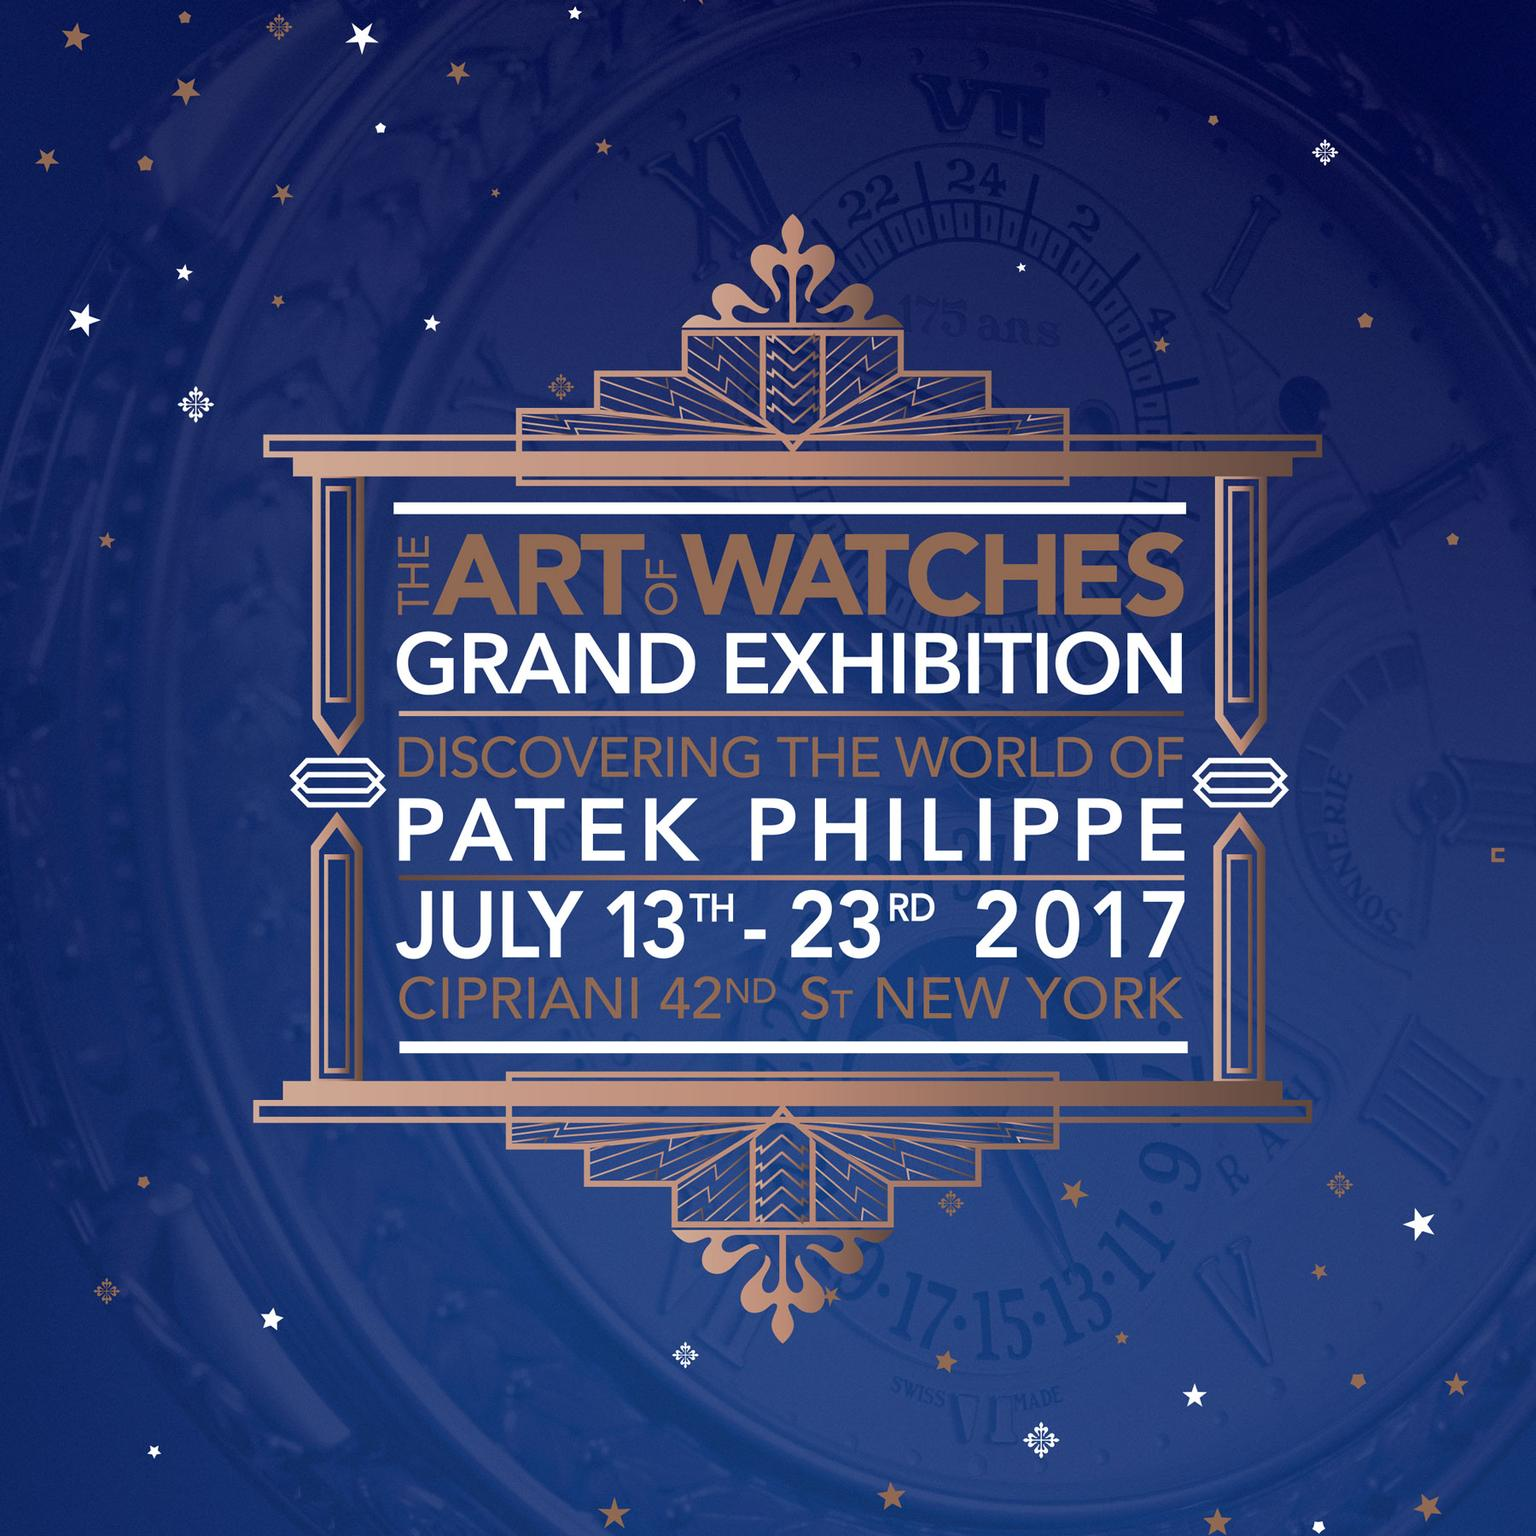 Patek Philippe's Art of Watches Grand Exhibition